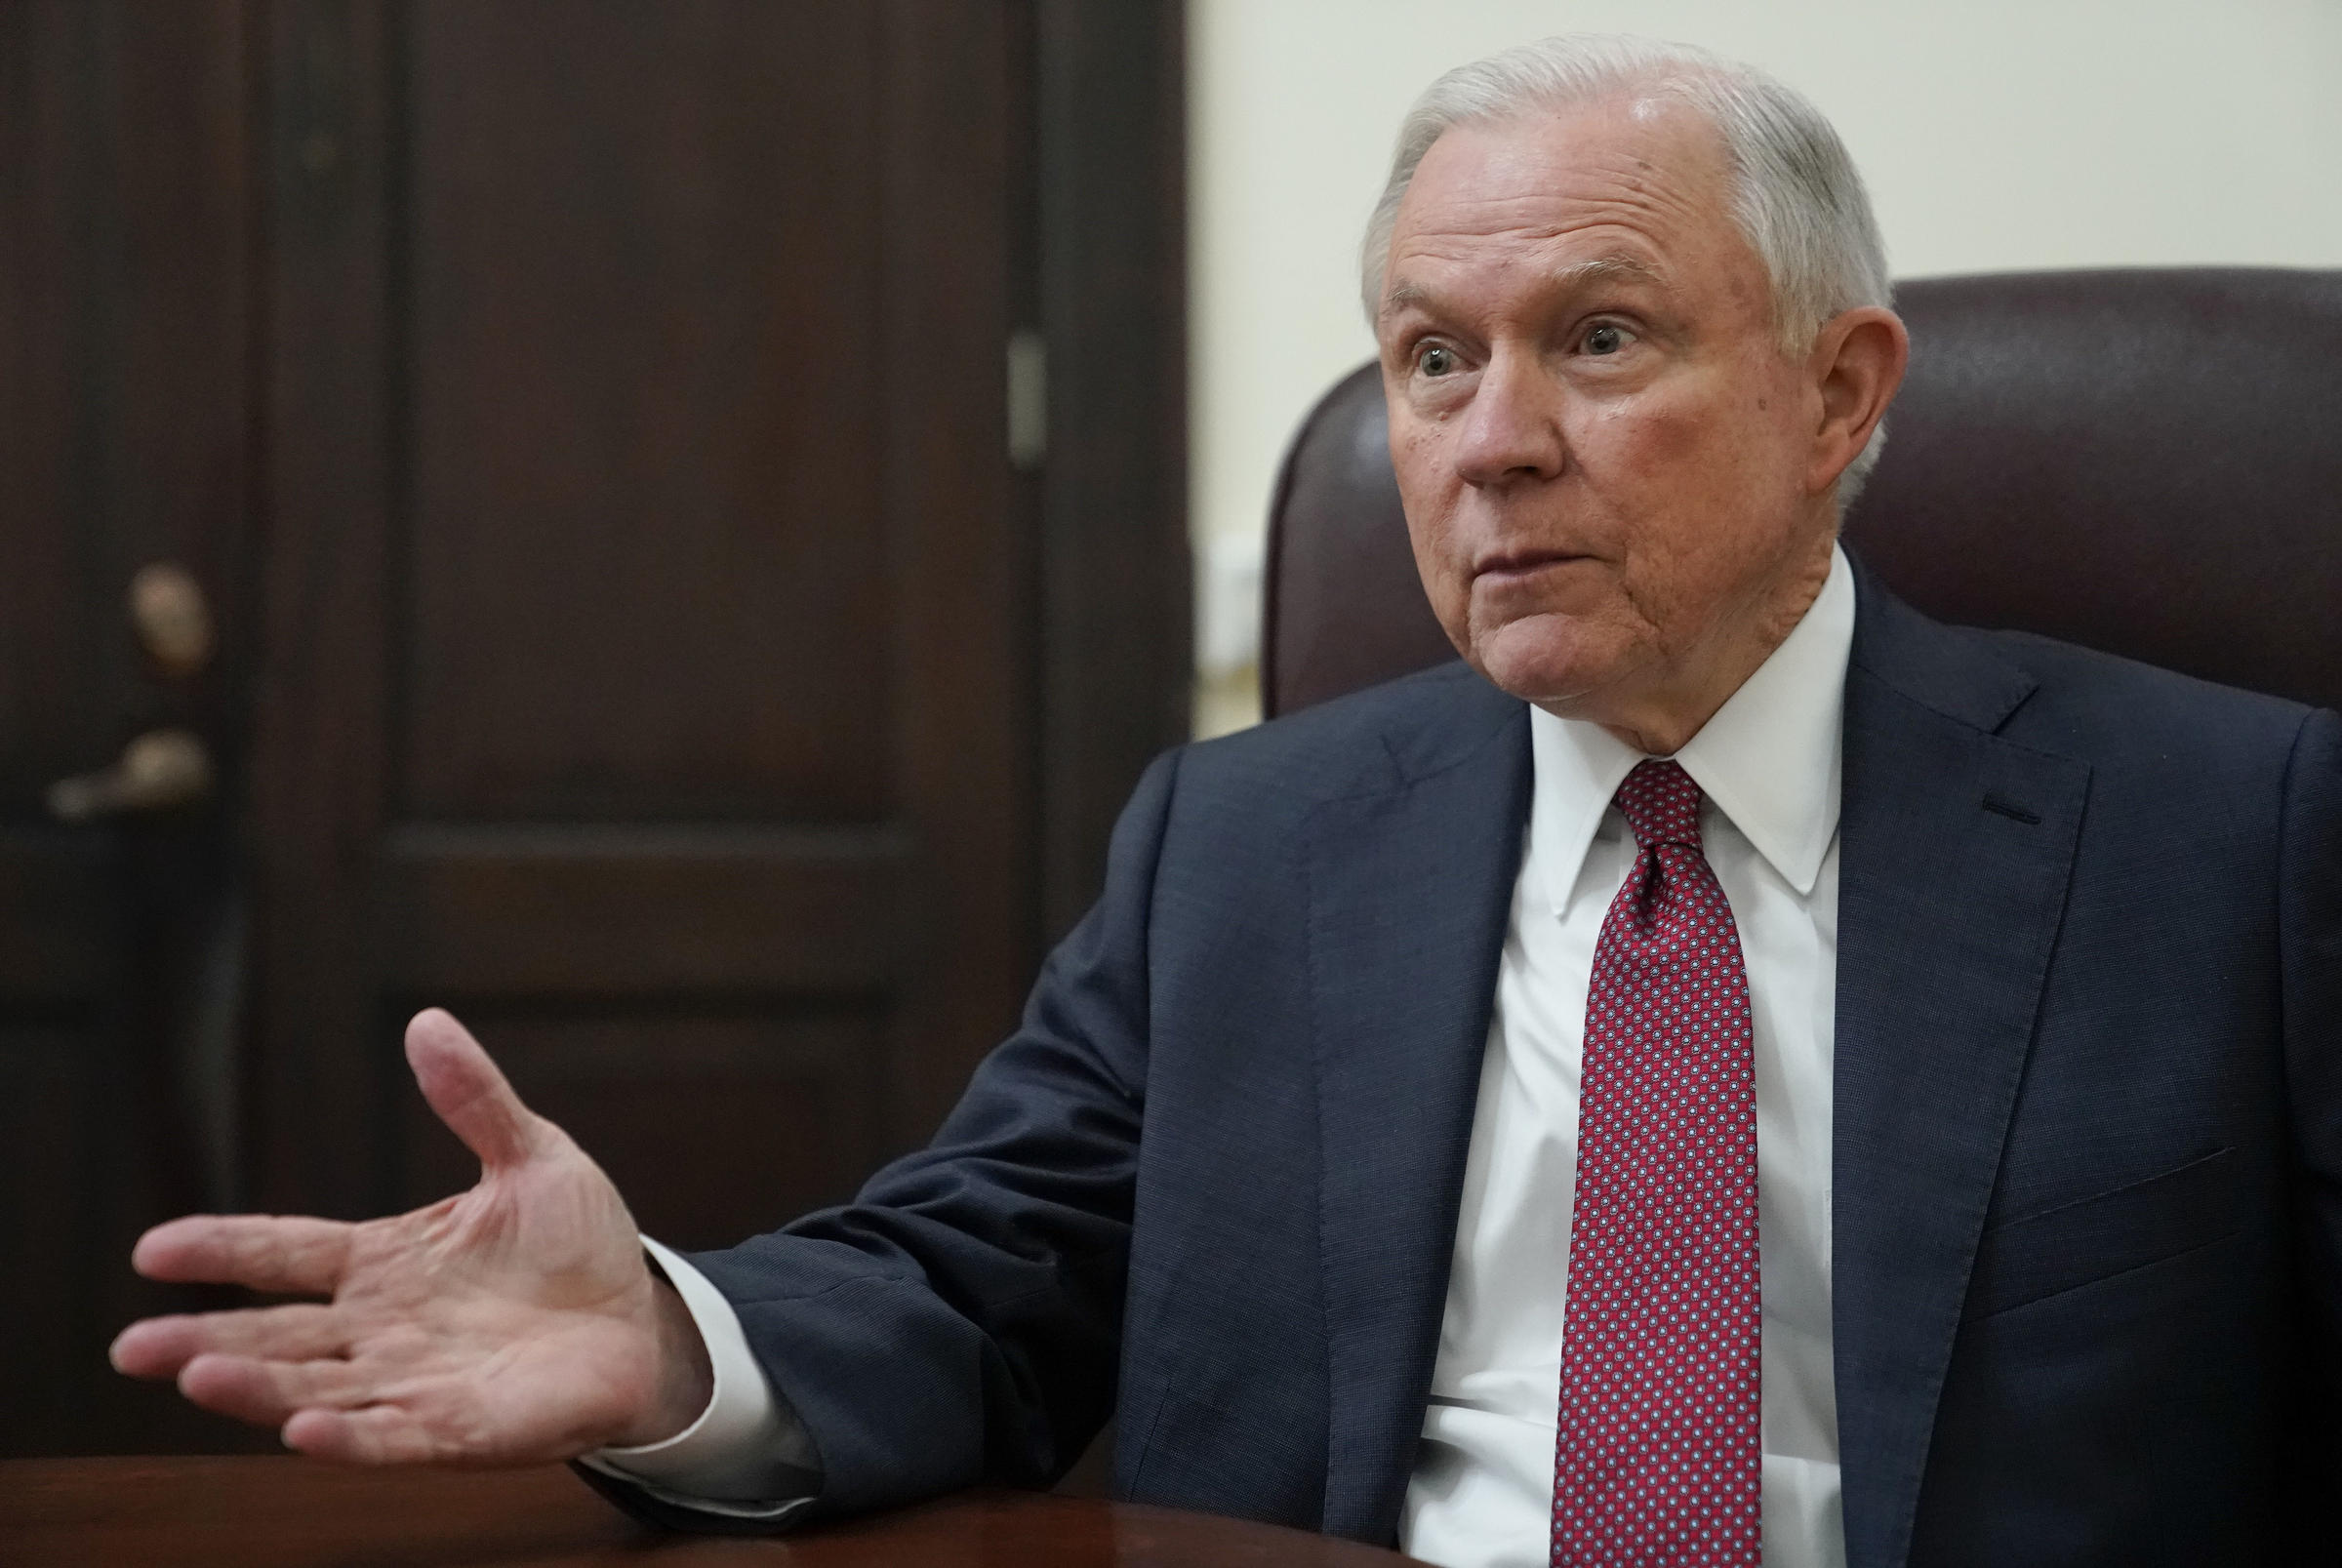 Attorney General Sessions Threatens to Punish 'Sanctuary Cities'